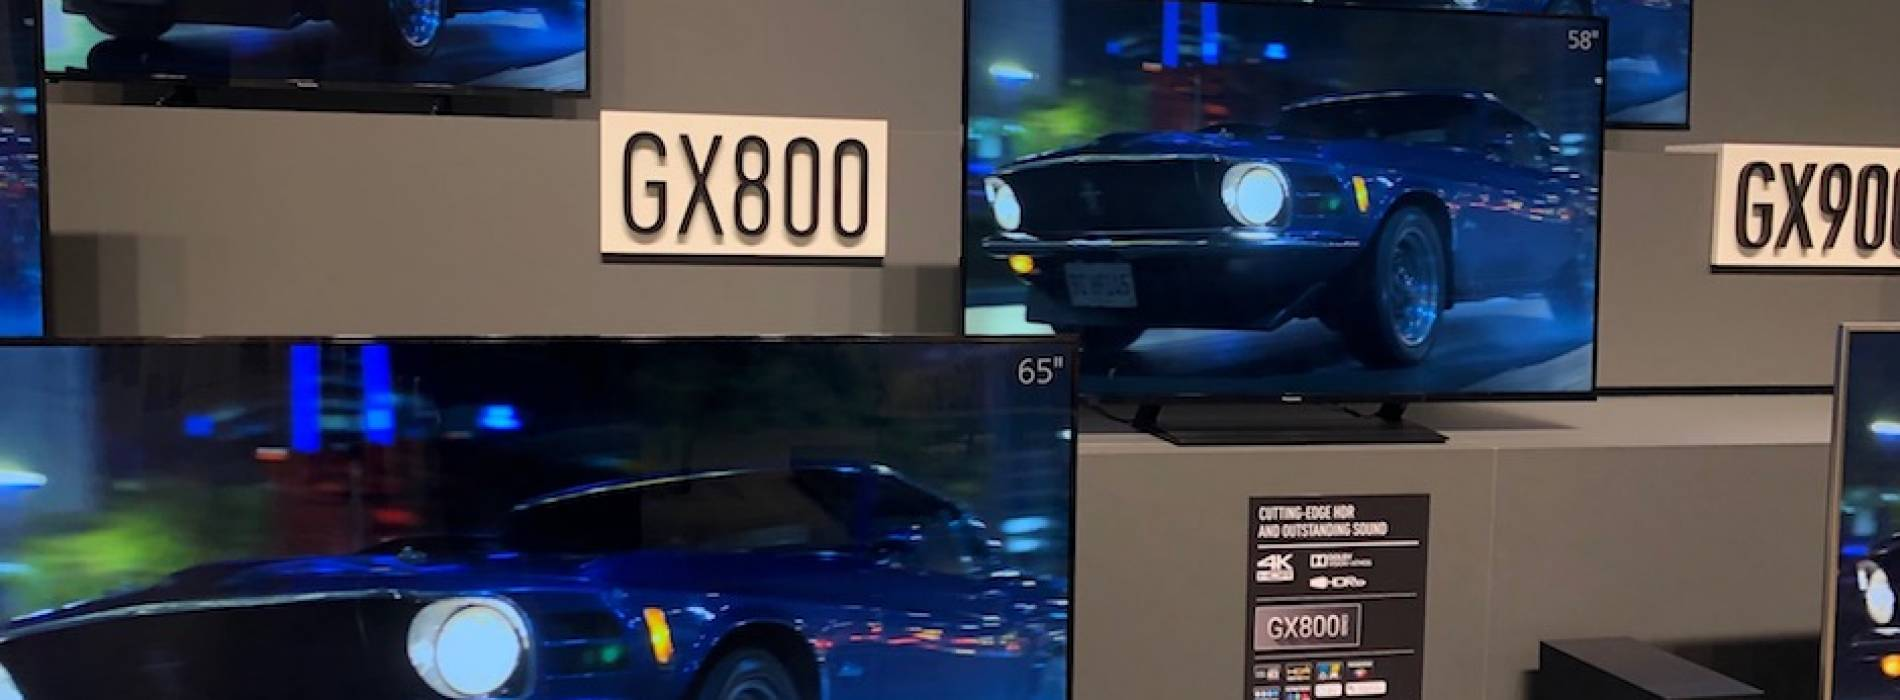 Panasonic presenta la GX800, su nueva TV LED 4K